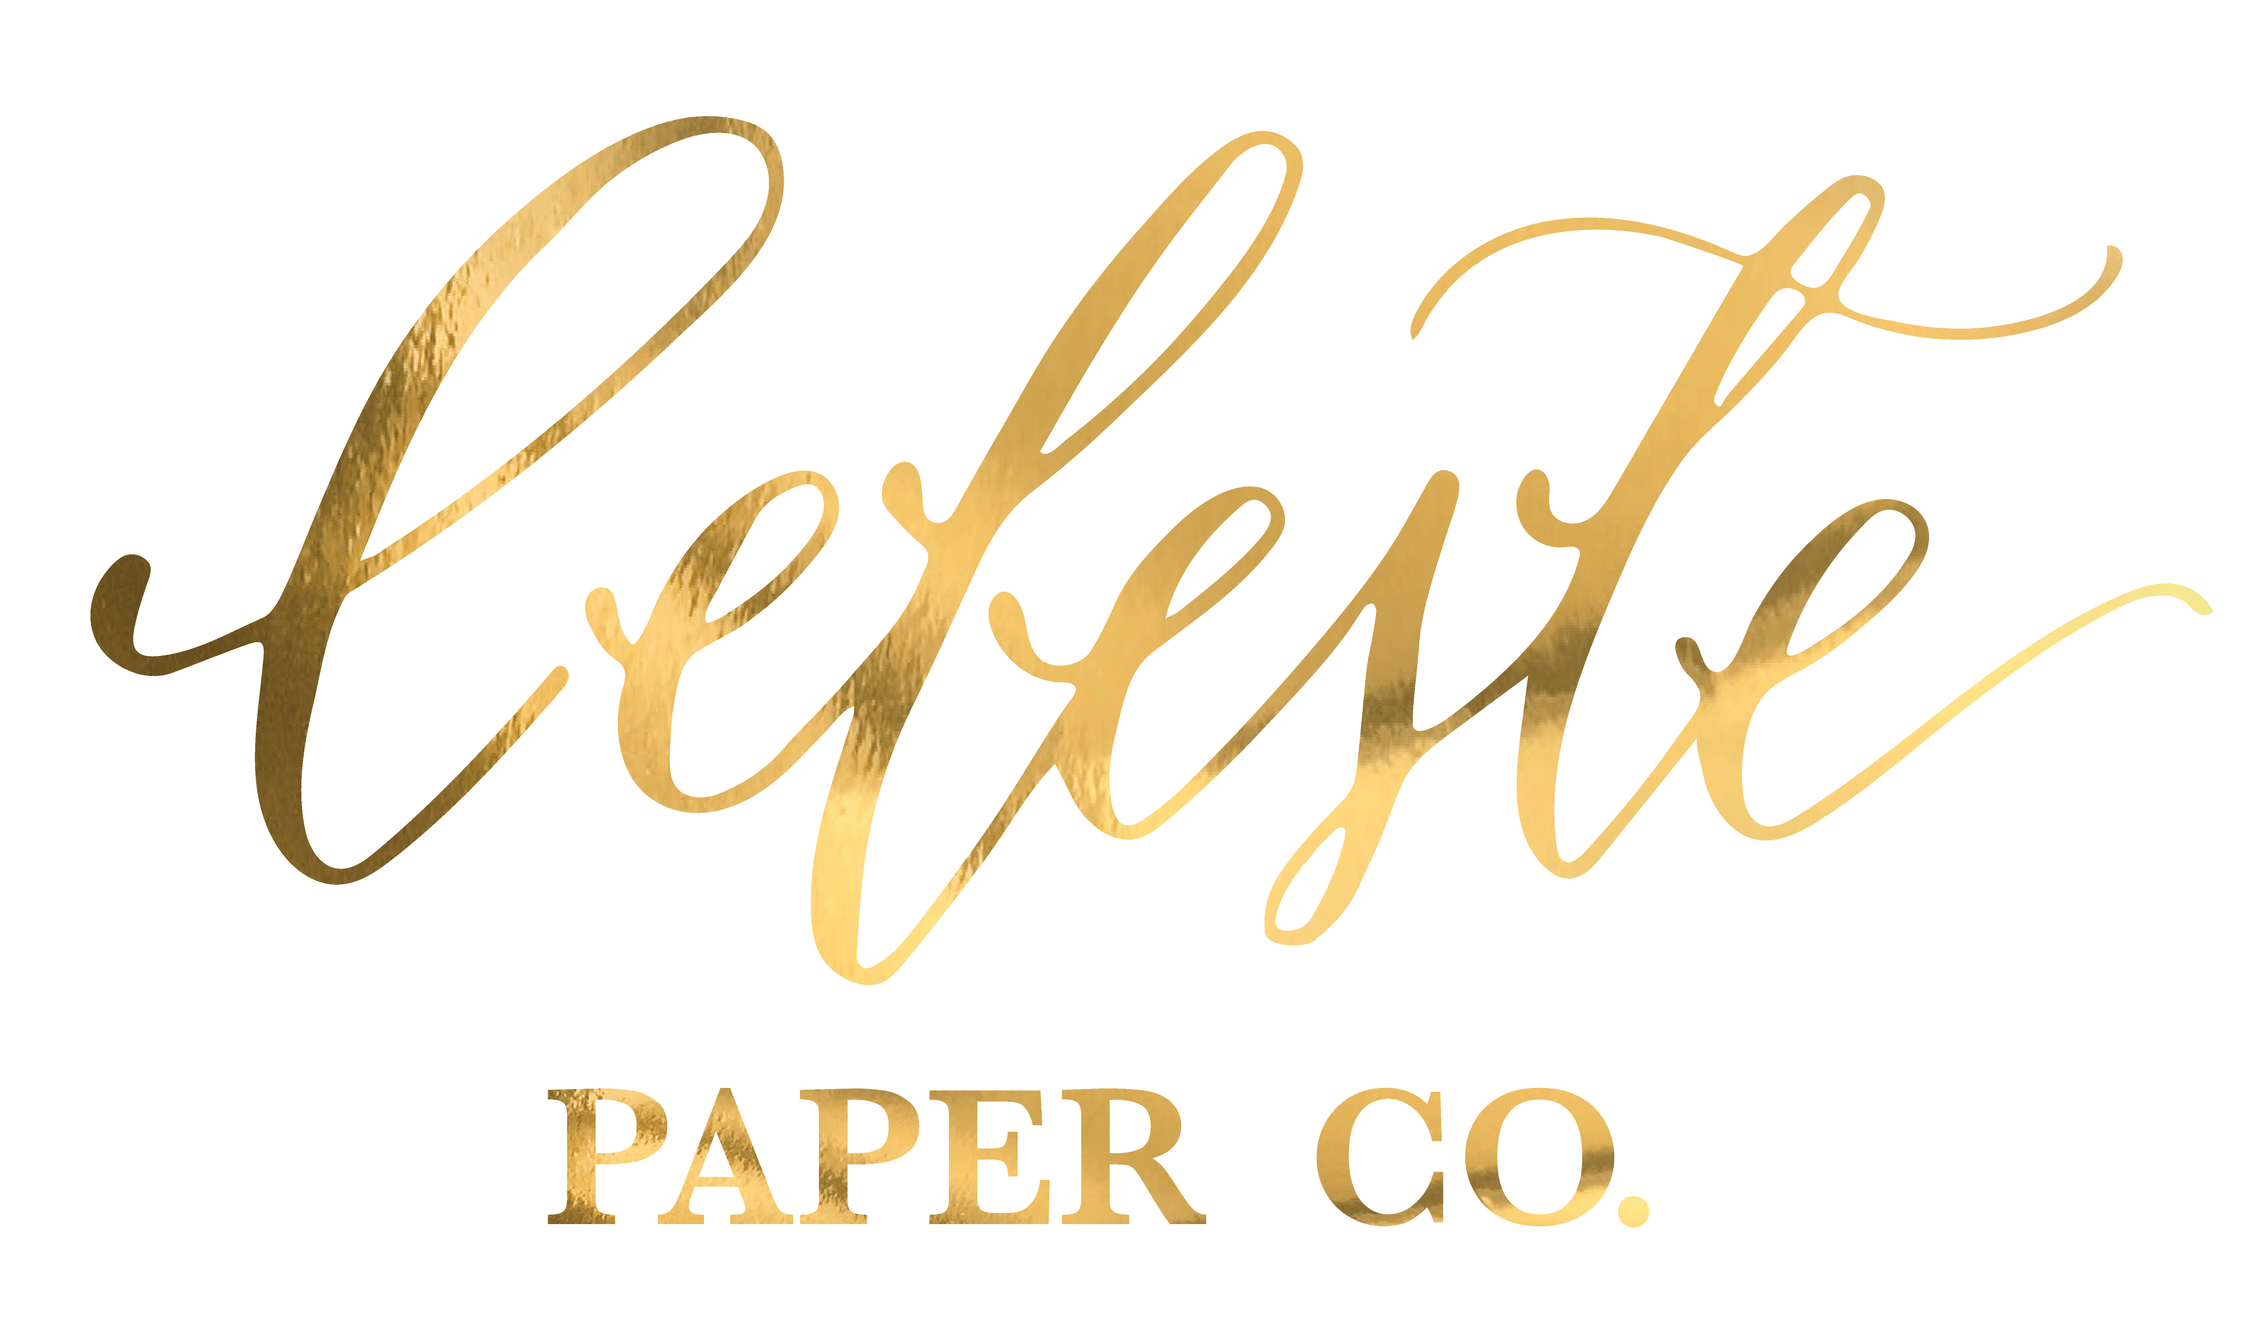 Calligraphy Online Calligraphy Styles Celeste Paper Co